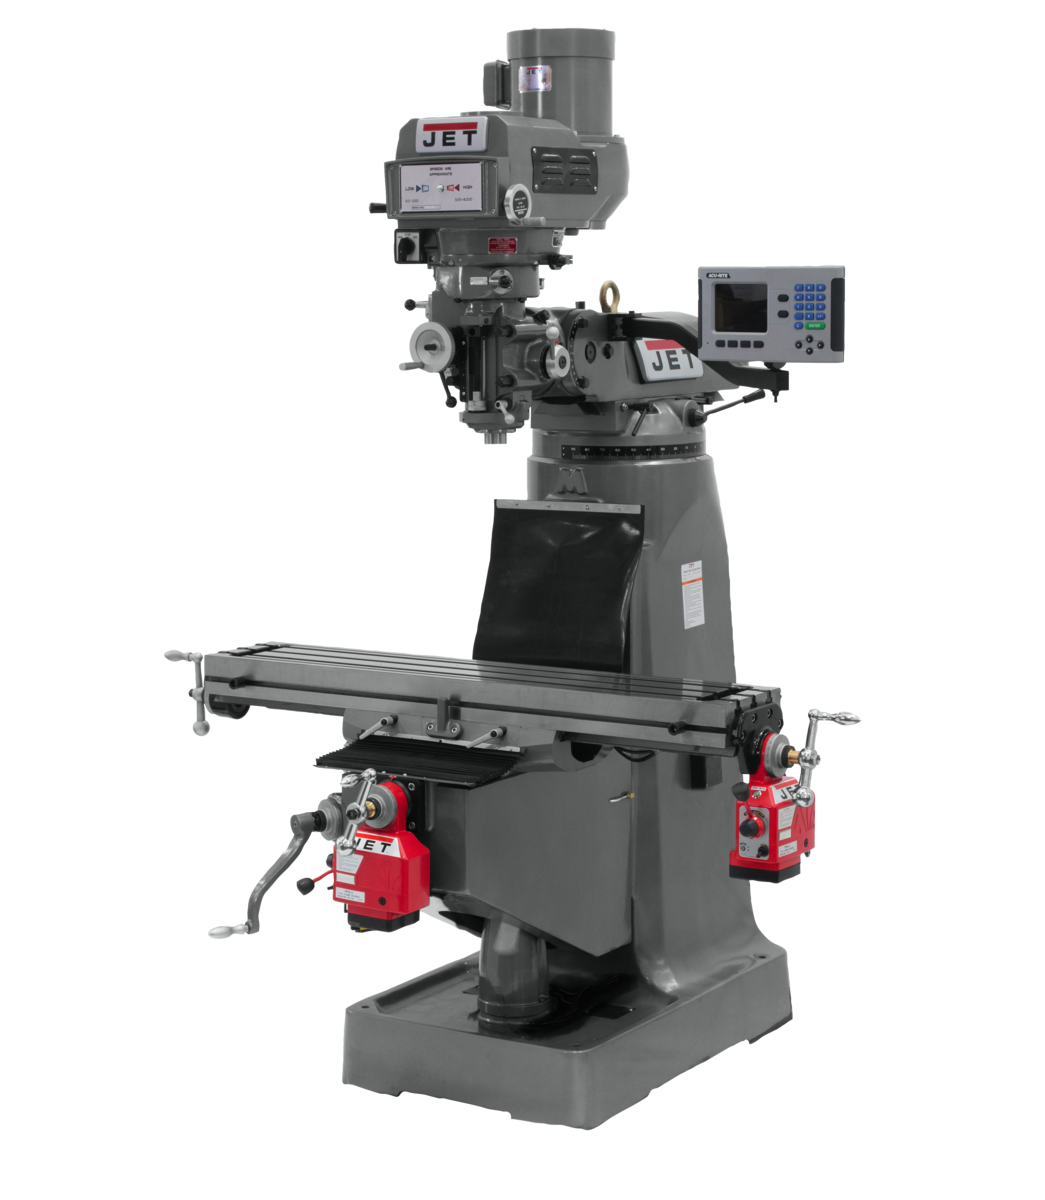 JTM-4VS-1 Mill With 3-Axis ACU-RITE 203 DRO (Quill) With X and Y-Axis Powerfeeds